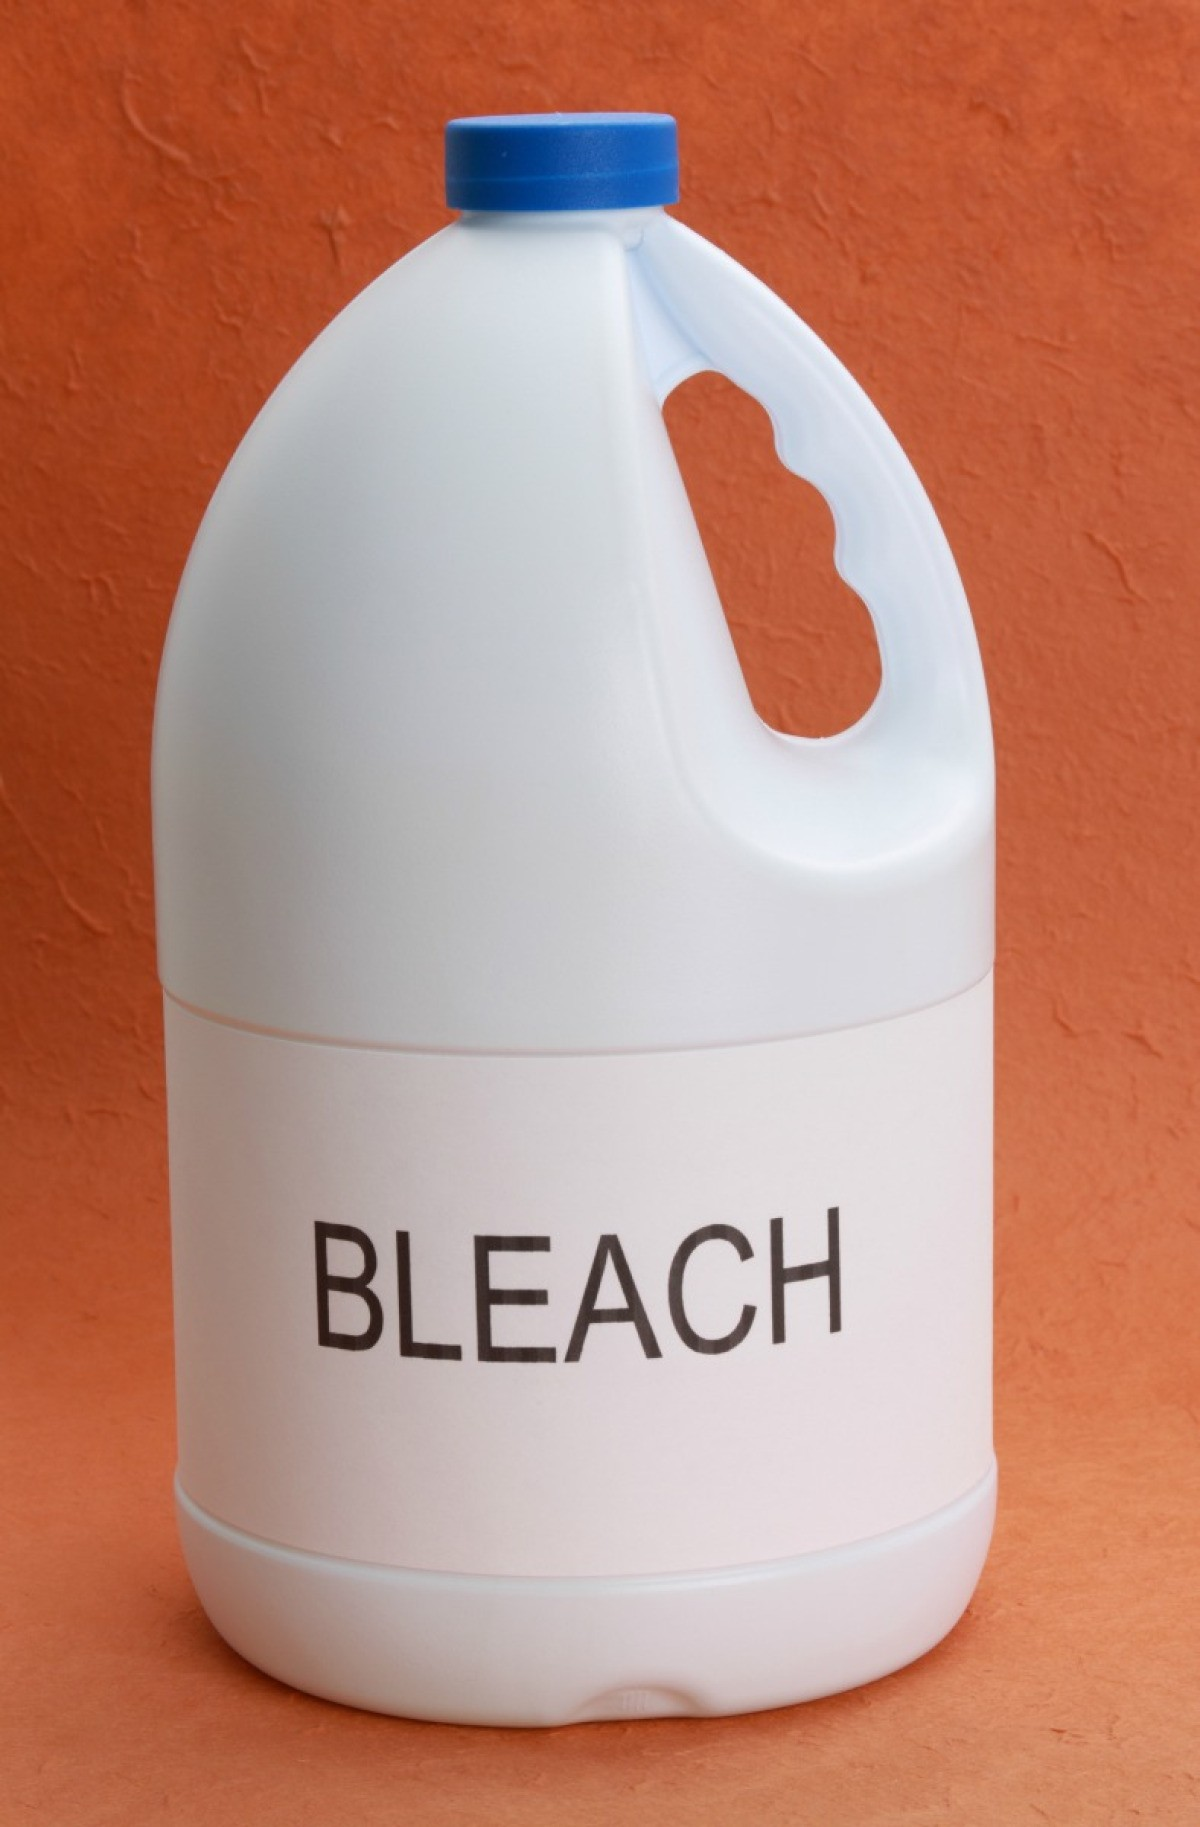 Bleach spills can actually remove the color from your carpet. This is a guide about repairing bleach stains on carpet.